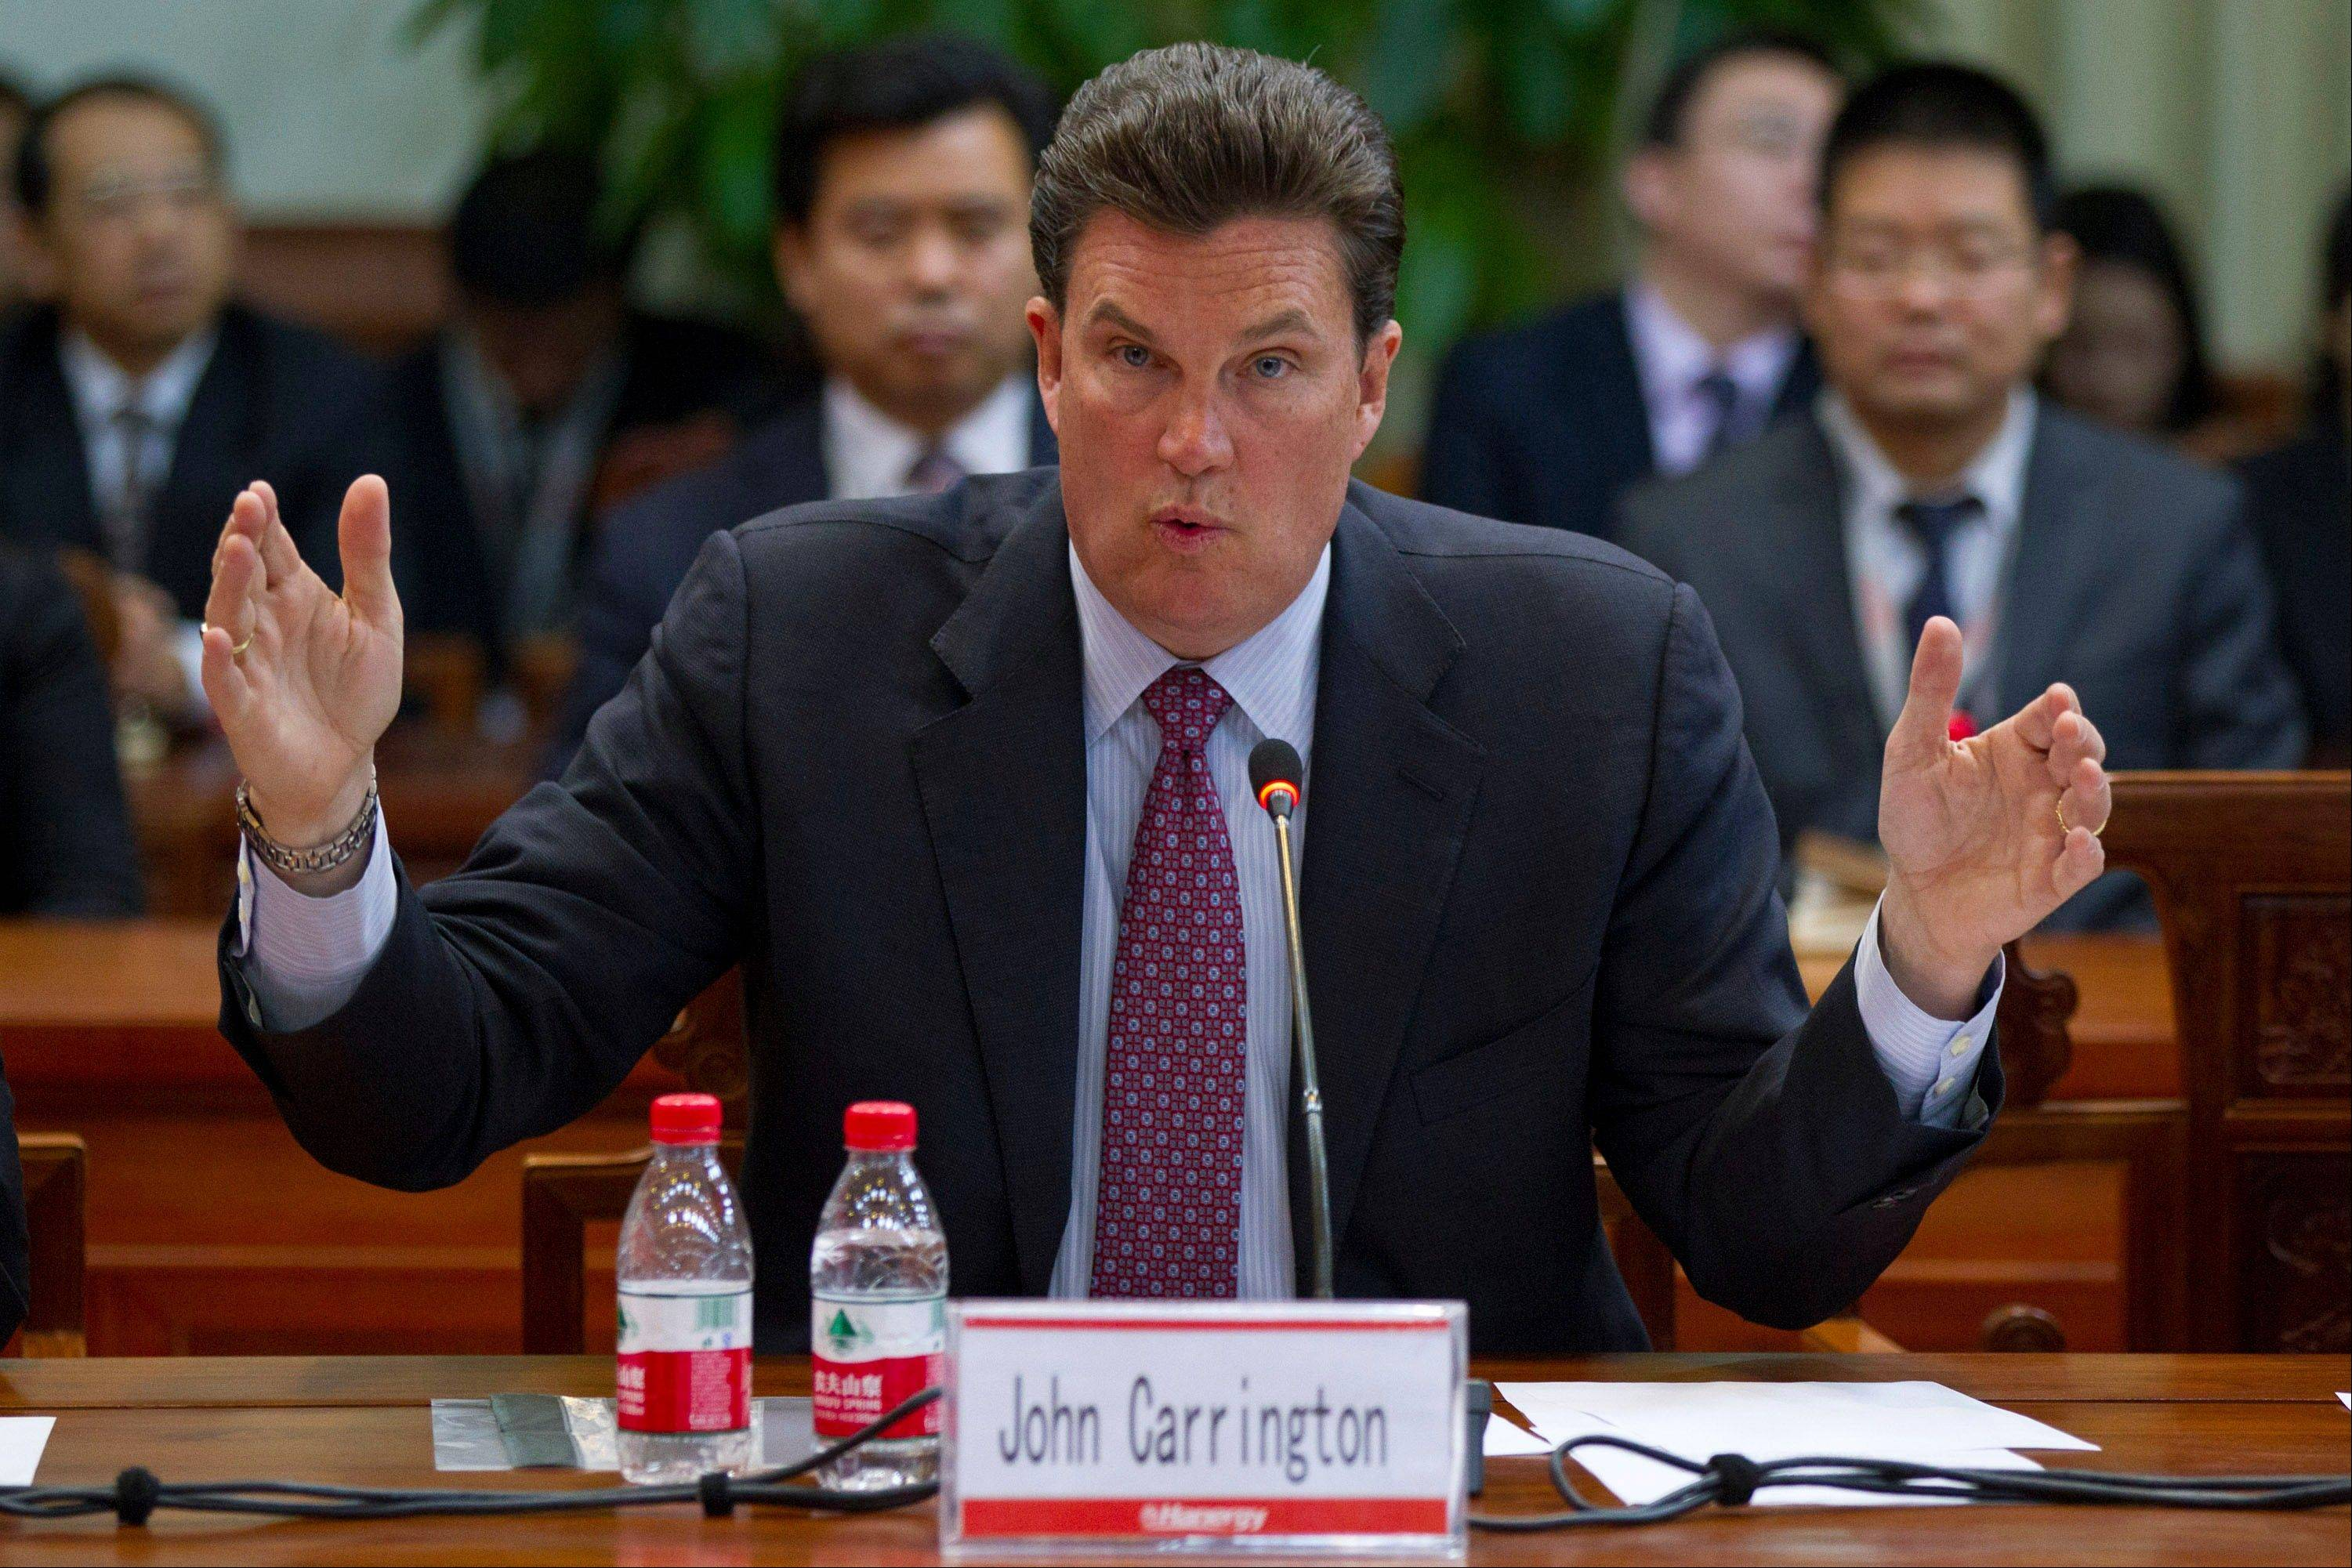 CEO of MiaSole John Carrignton speaks Wednesday during a news conference held at the headquarters of Hanergy Group in Beijing, China.